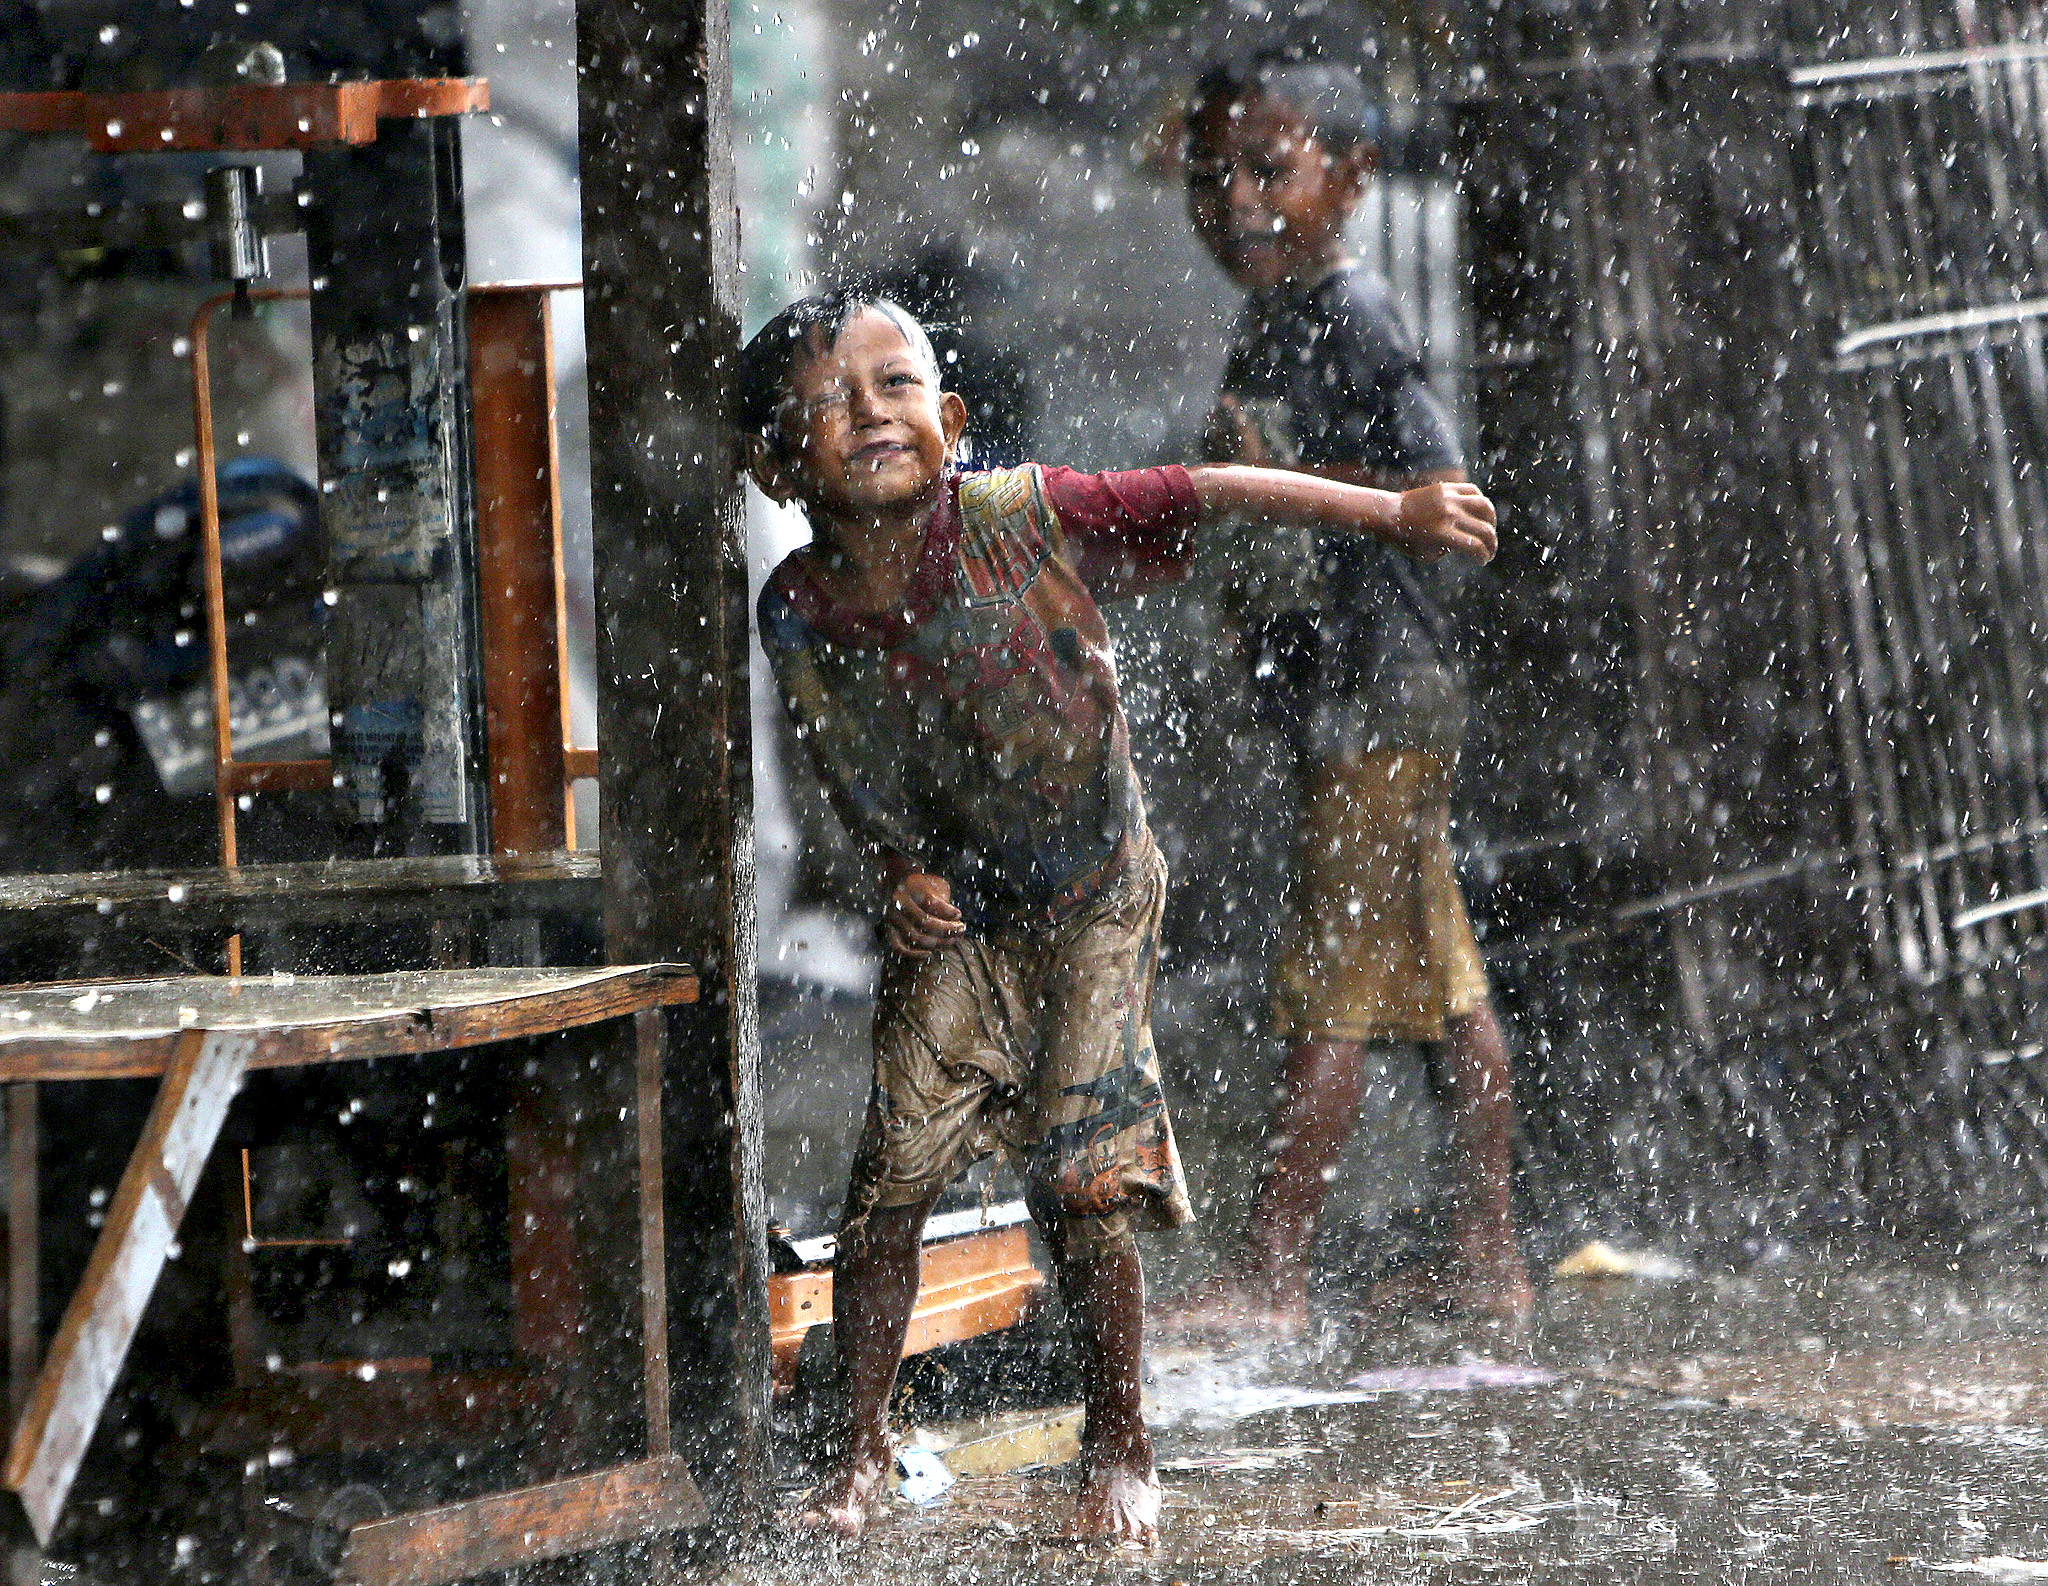 Indonesian children play in the rain during a heavy downpour in Jakarta, Indonesia